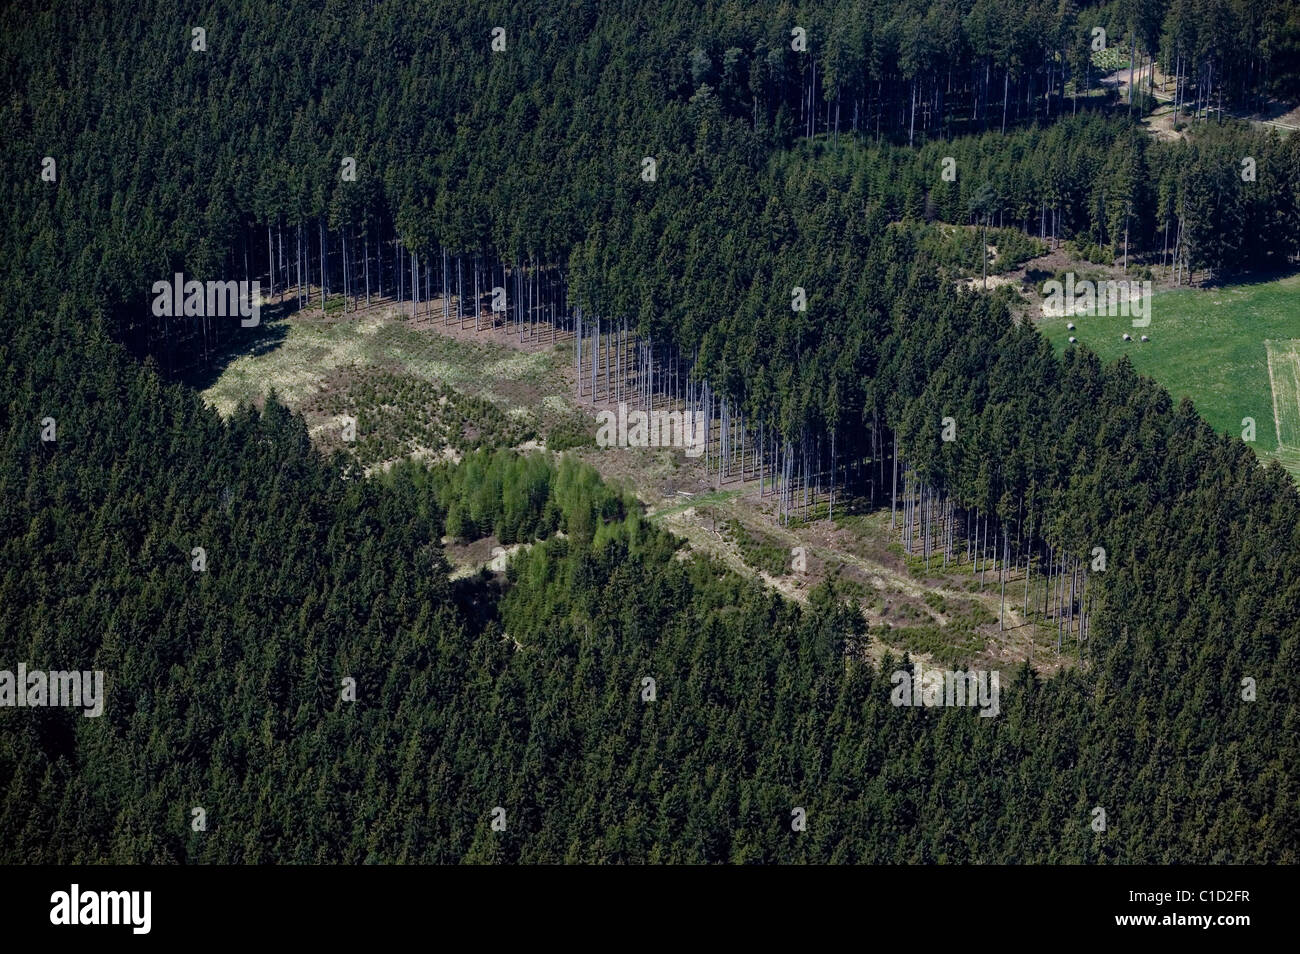 aerial view above stand of evergreen trees Bavaria Germany - Stock Image